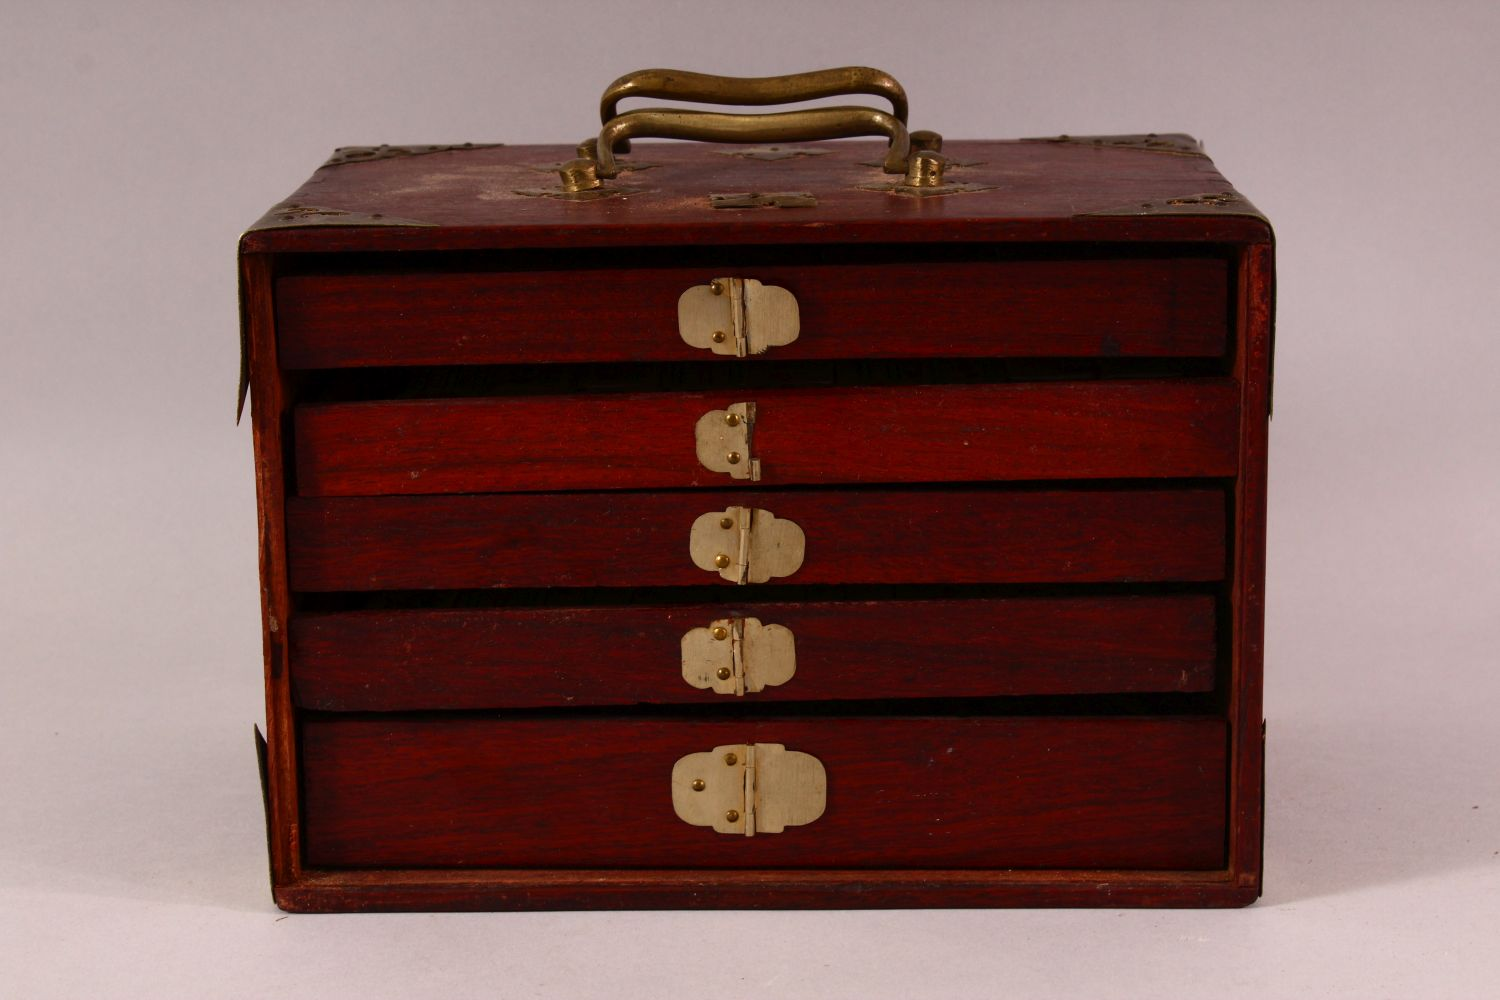 A CHINESE BAMBOO & BONE BOXED MAHJONG SET - comprising 56 drawers full of counters and sticks, - Image 4 of 6